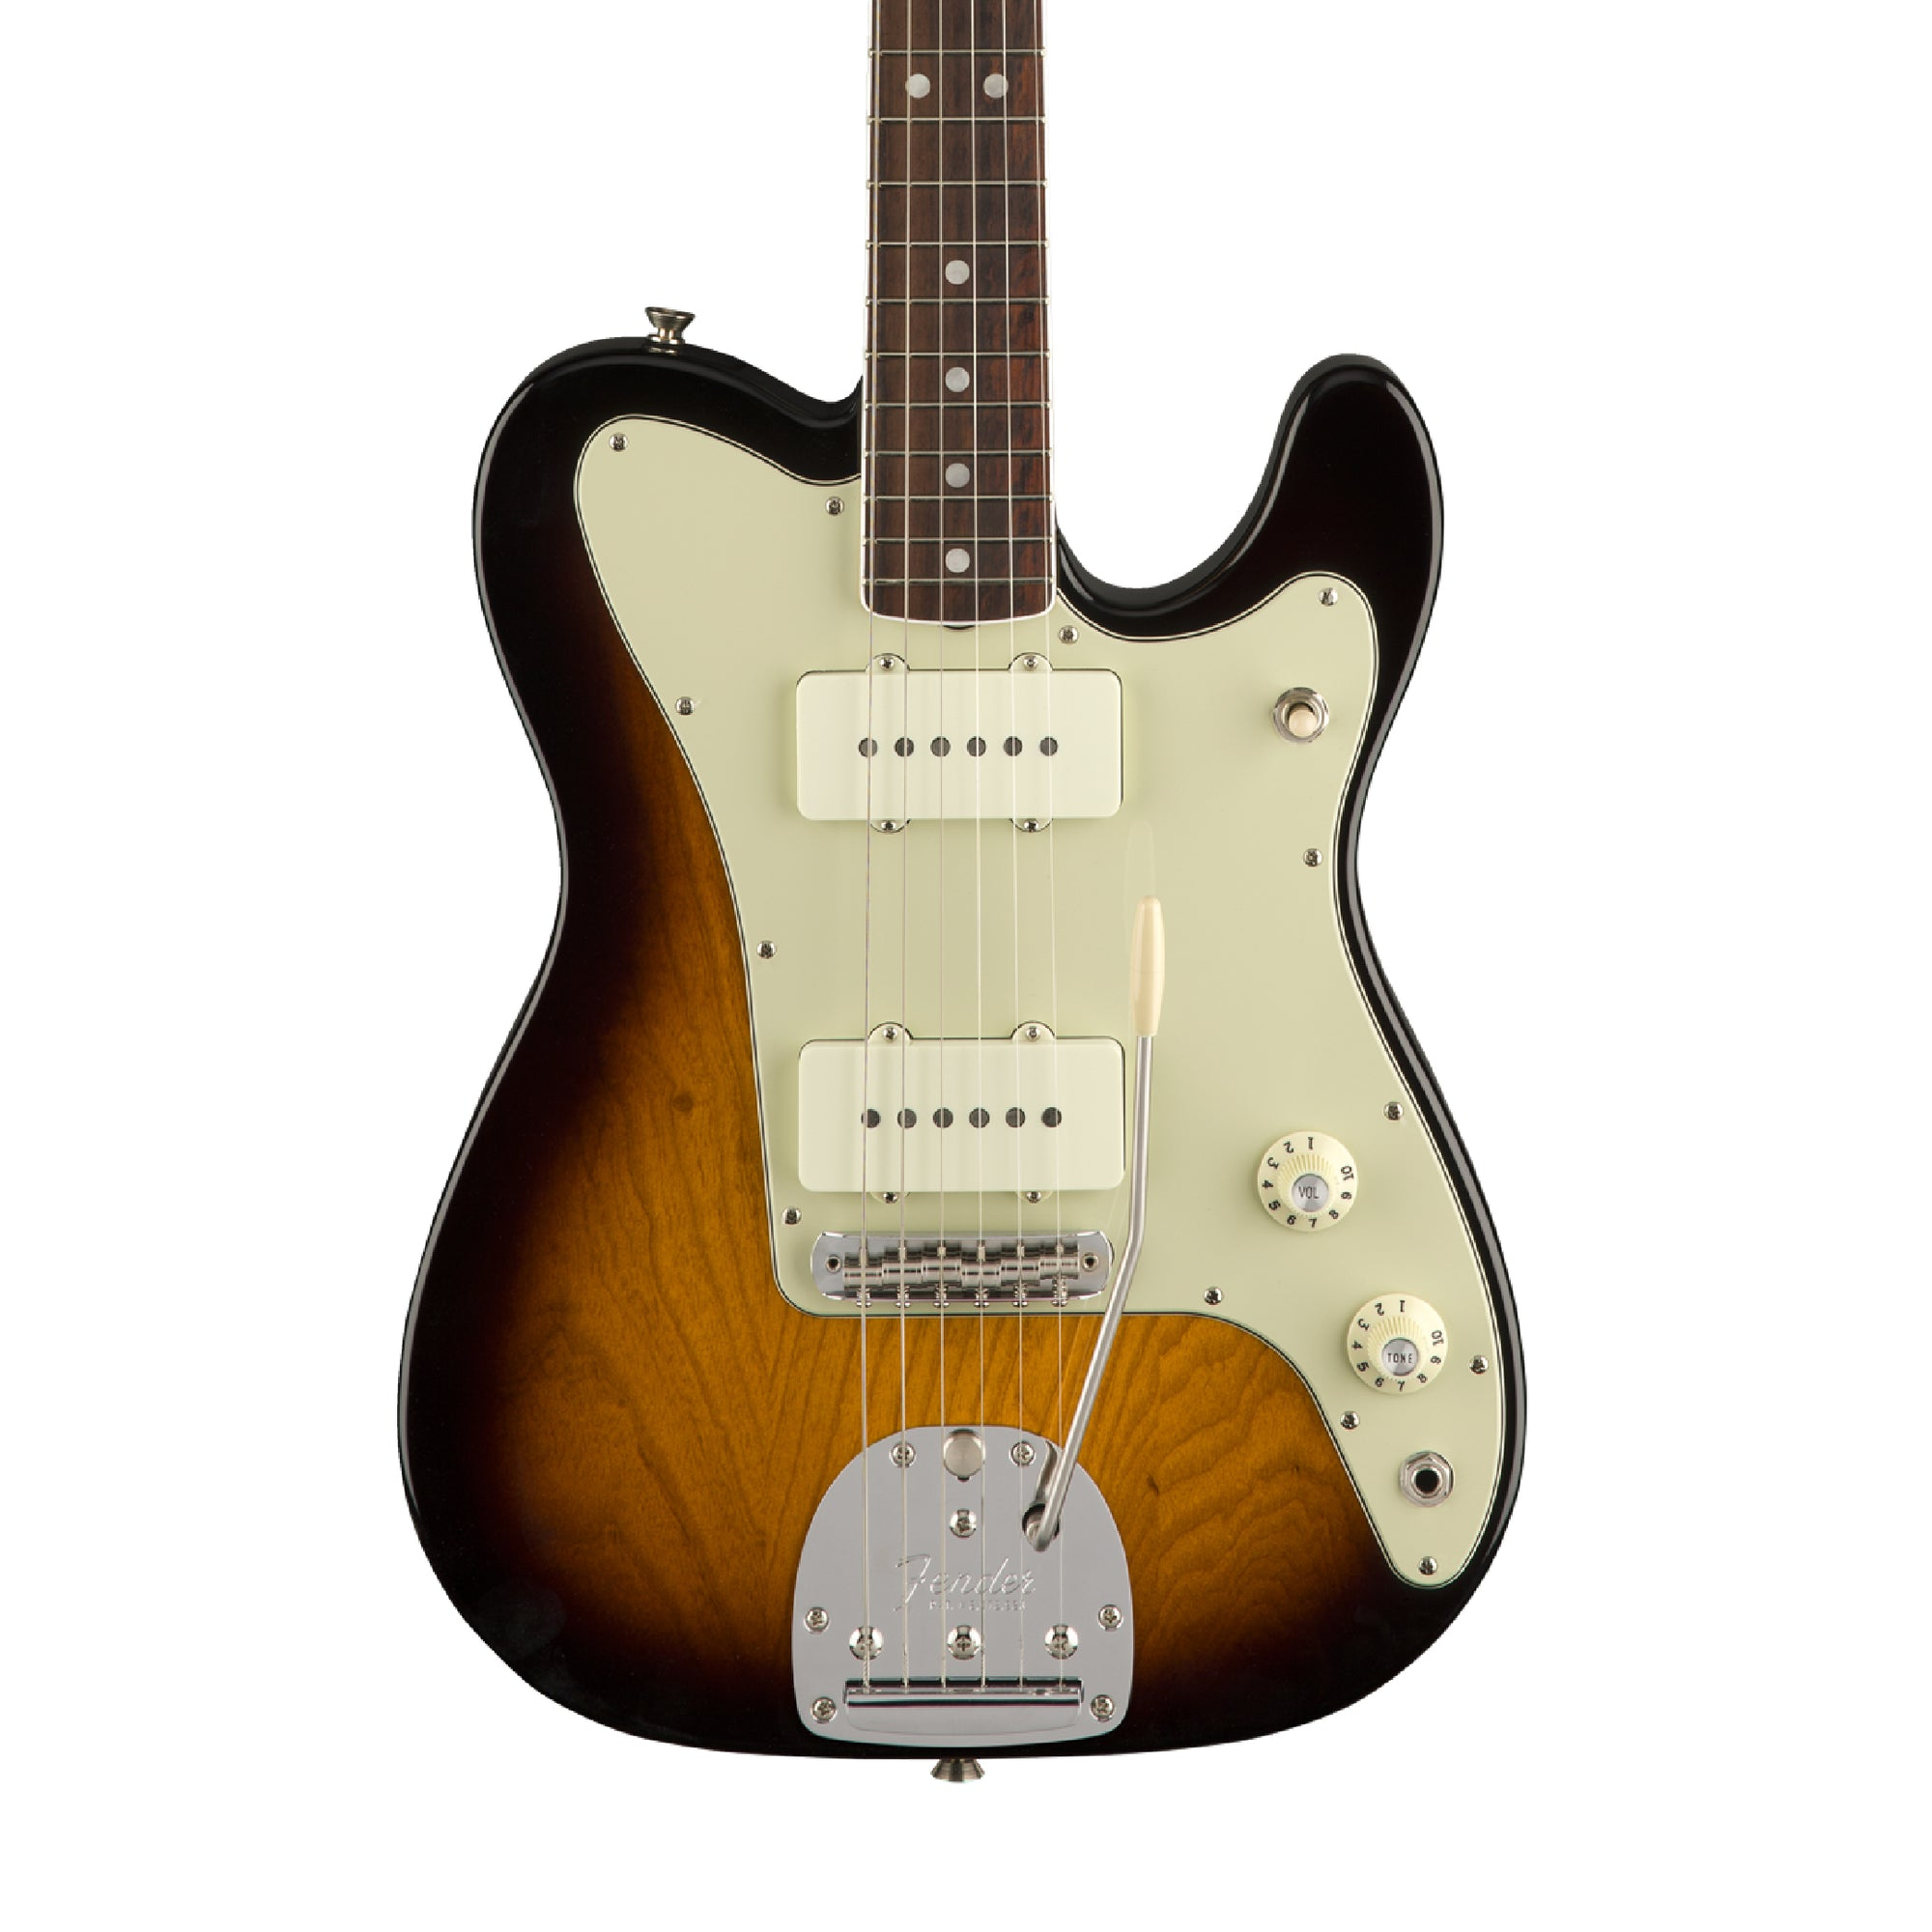 Fender Parallel Universe Jazz Tele - 2 Color Sunburst (June 2018)